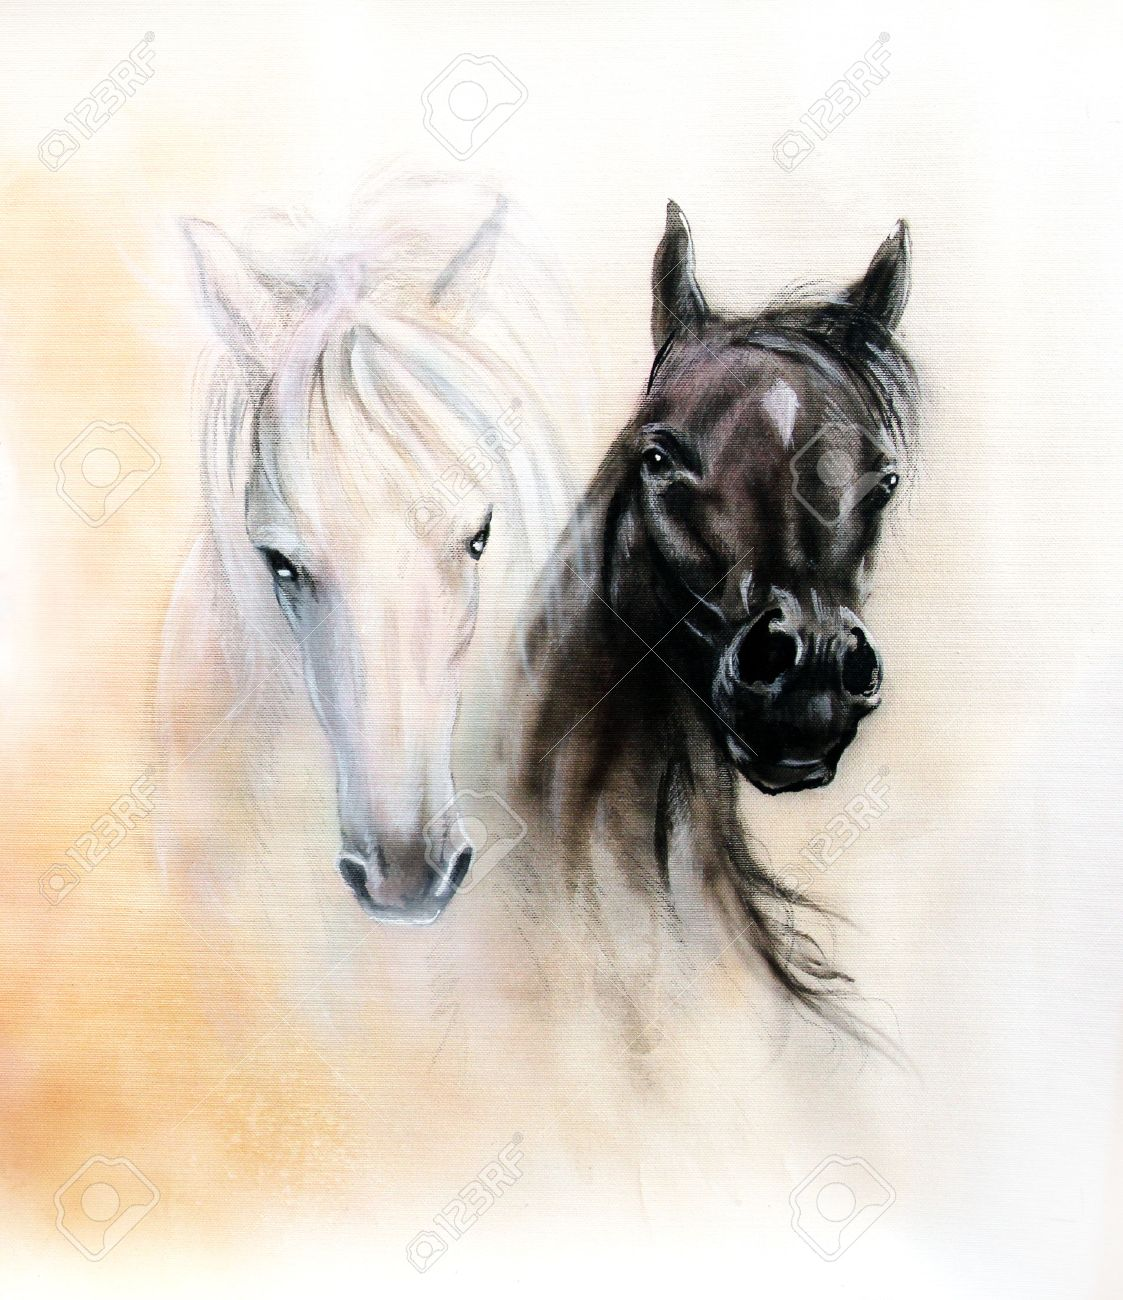 Horse Heads Two Black And White Horse Spirits Beautiful Detailed Stock Photo Picture And Royalty Free Image Image 38053289